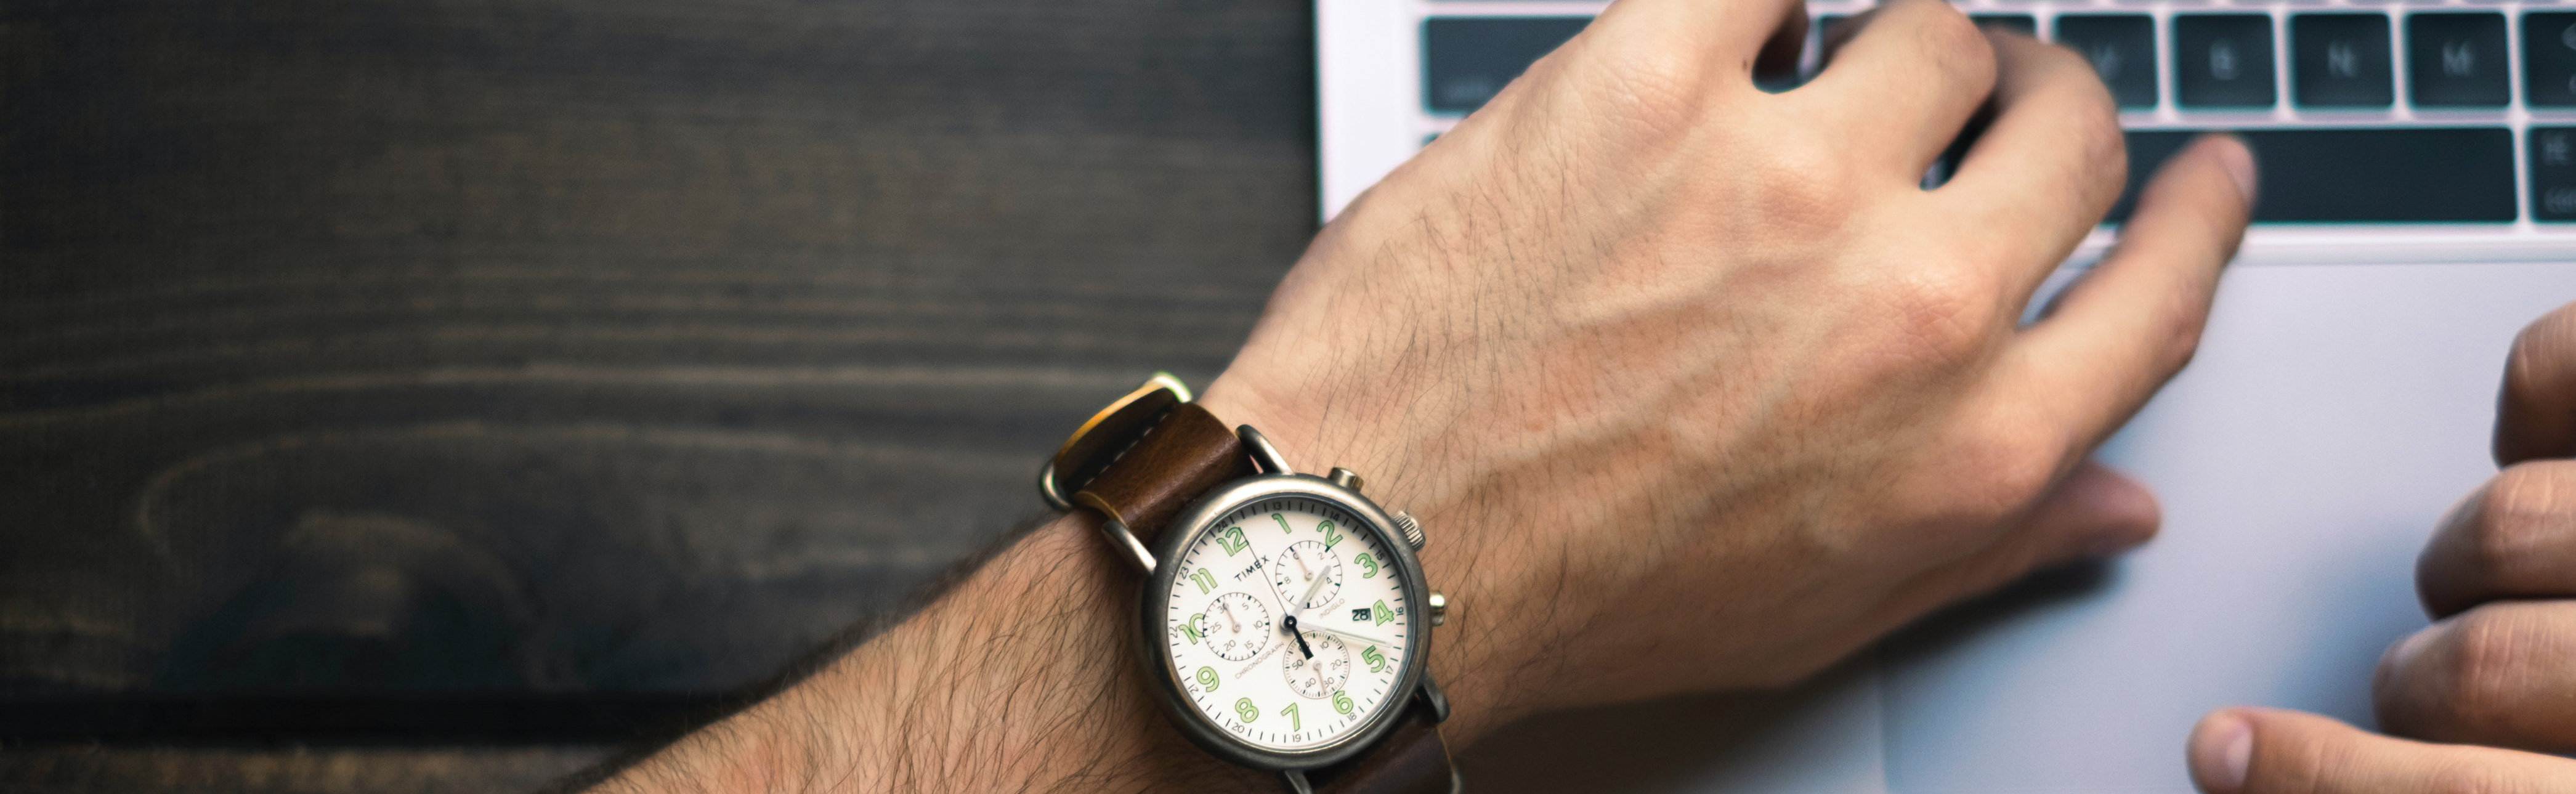 A hand with an analog wrist watch hovering over a laptop keyboard